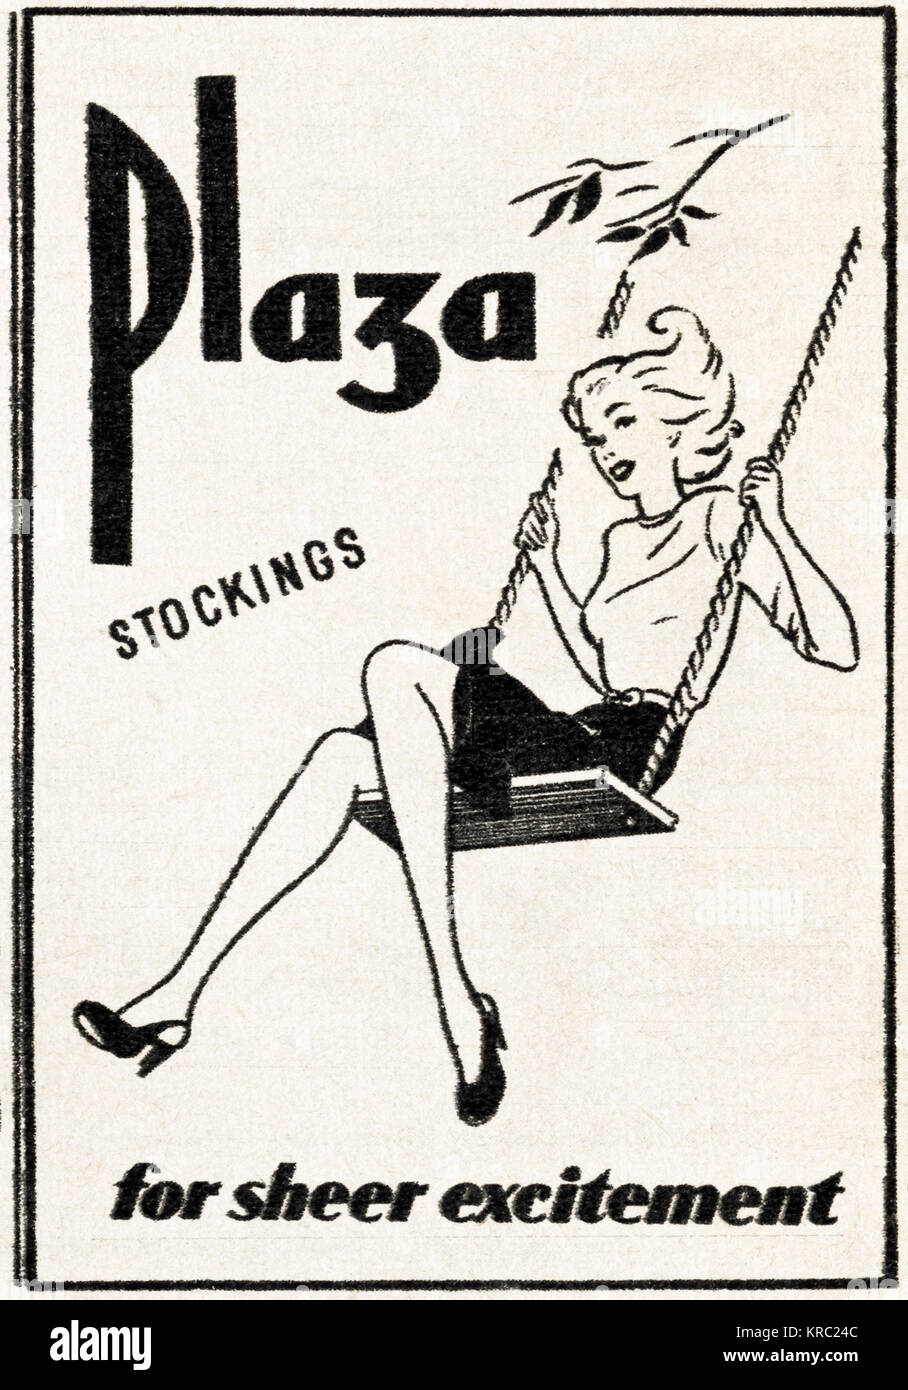 1940s old vintage original advert advertising Plaza stockings for ladies in magazine circa 1947 when supplies were - Stock Image